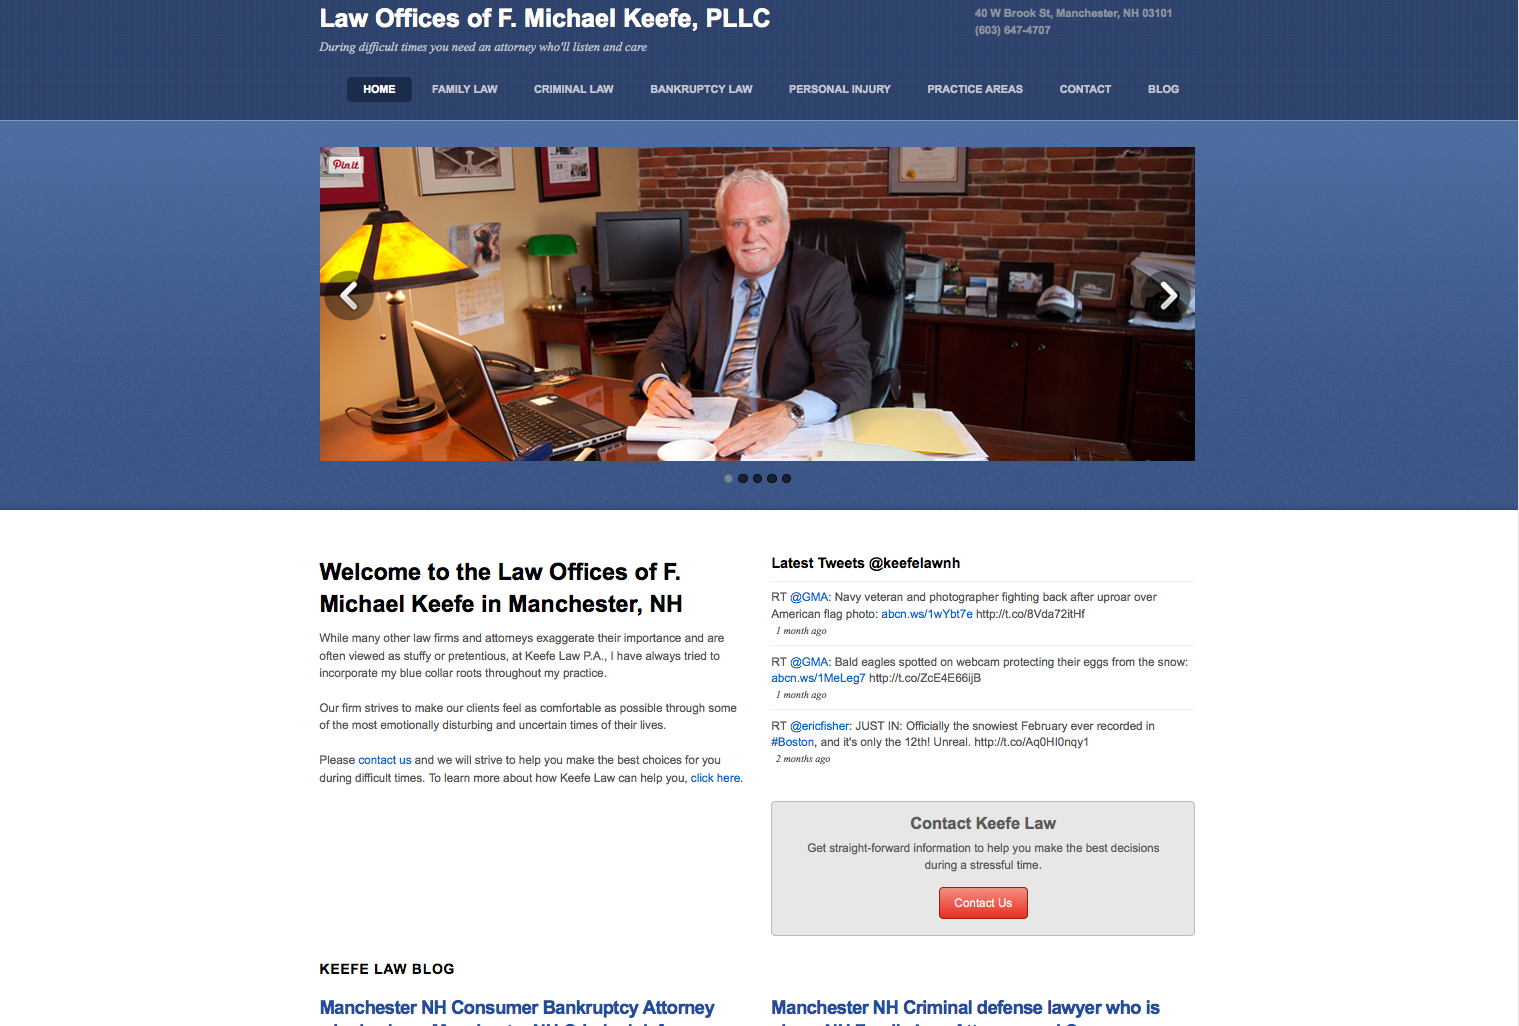 Law Offices of F. Michael Keefe, PLLC